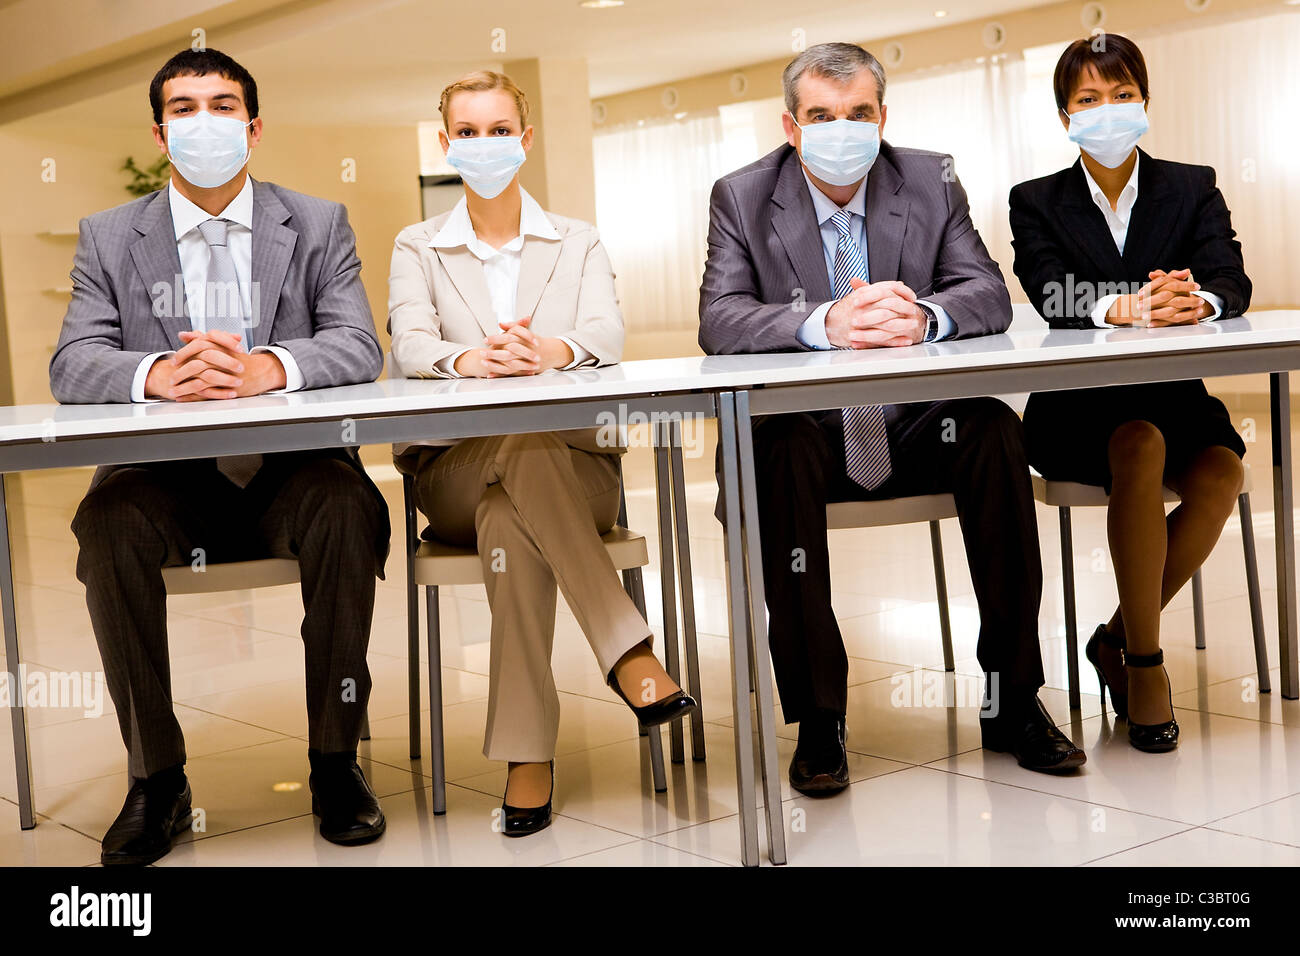 Portrait of group of business partners in protective masks looking at camera - Stock Image